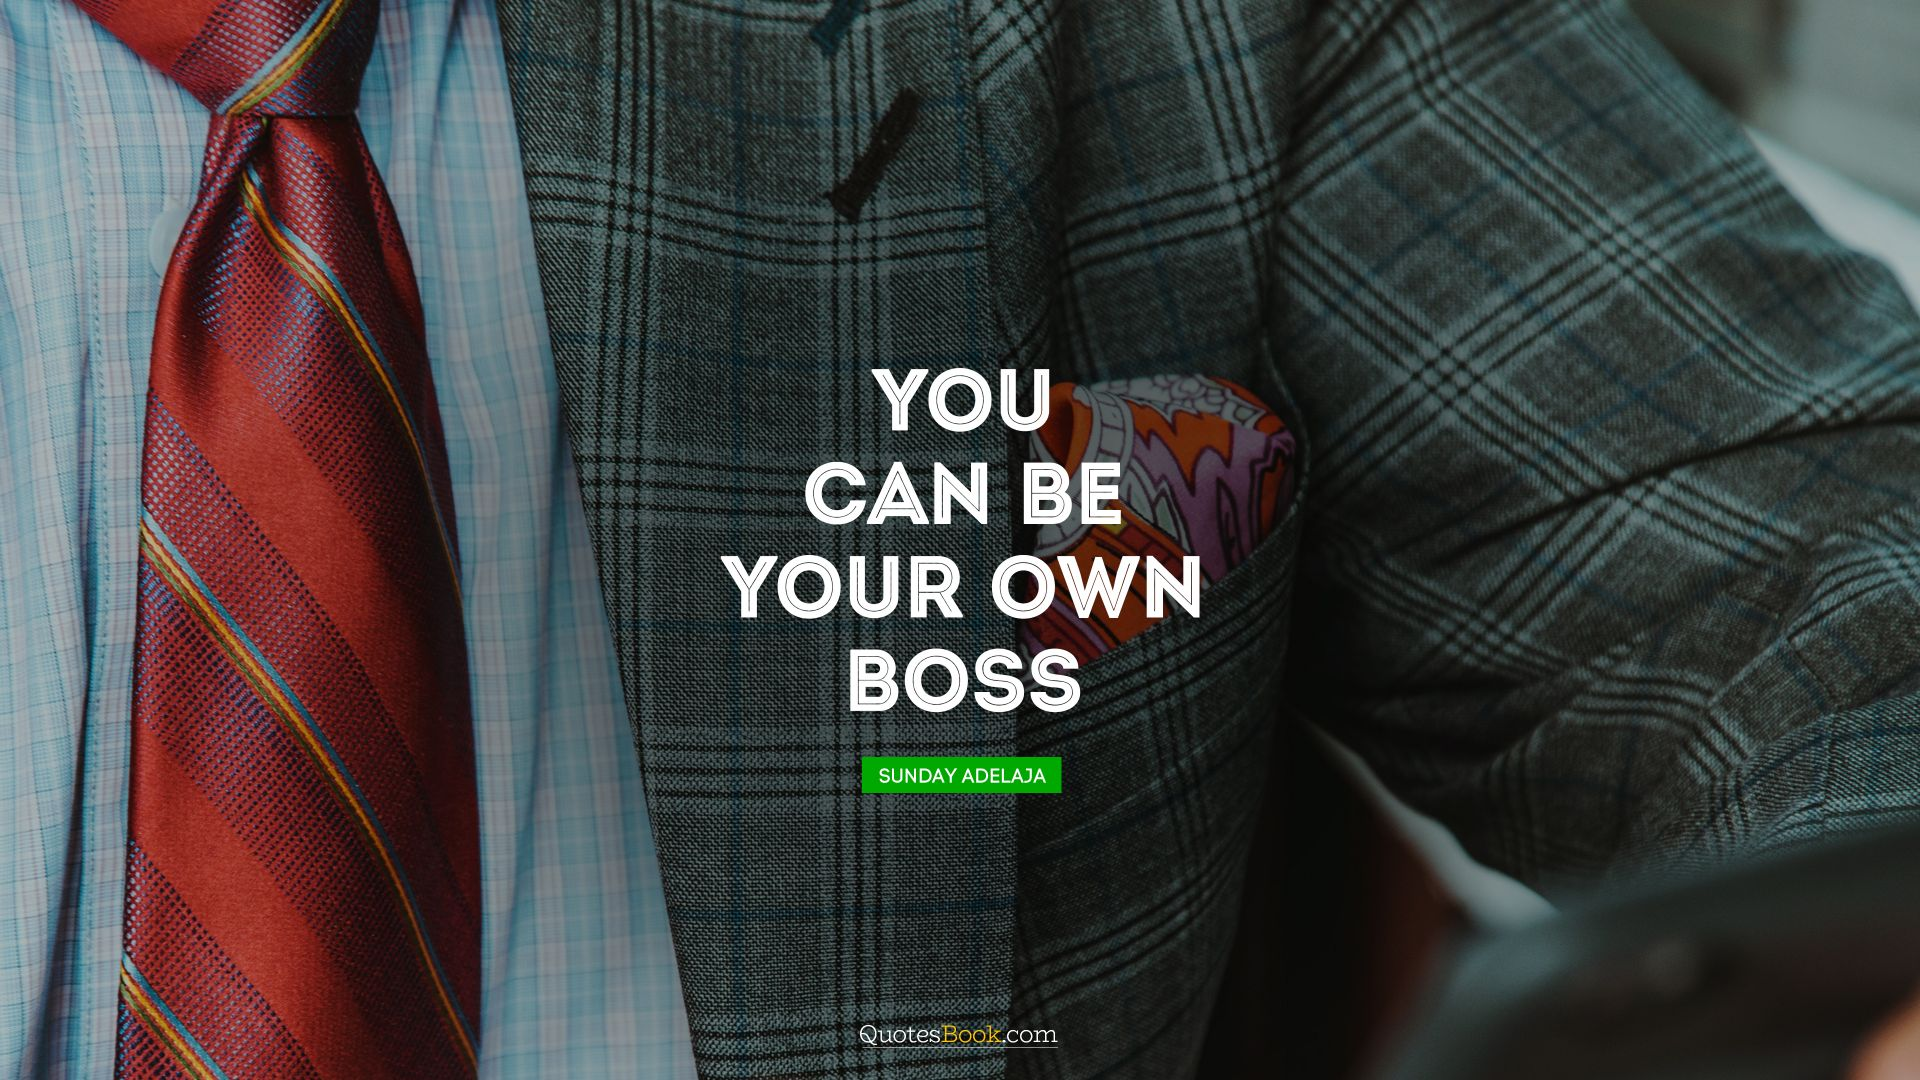 You can be your own boss. - Quote by Sunday Adelaja